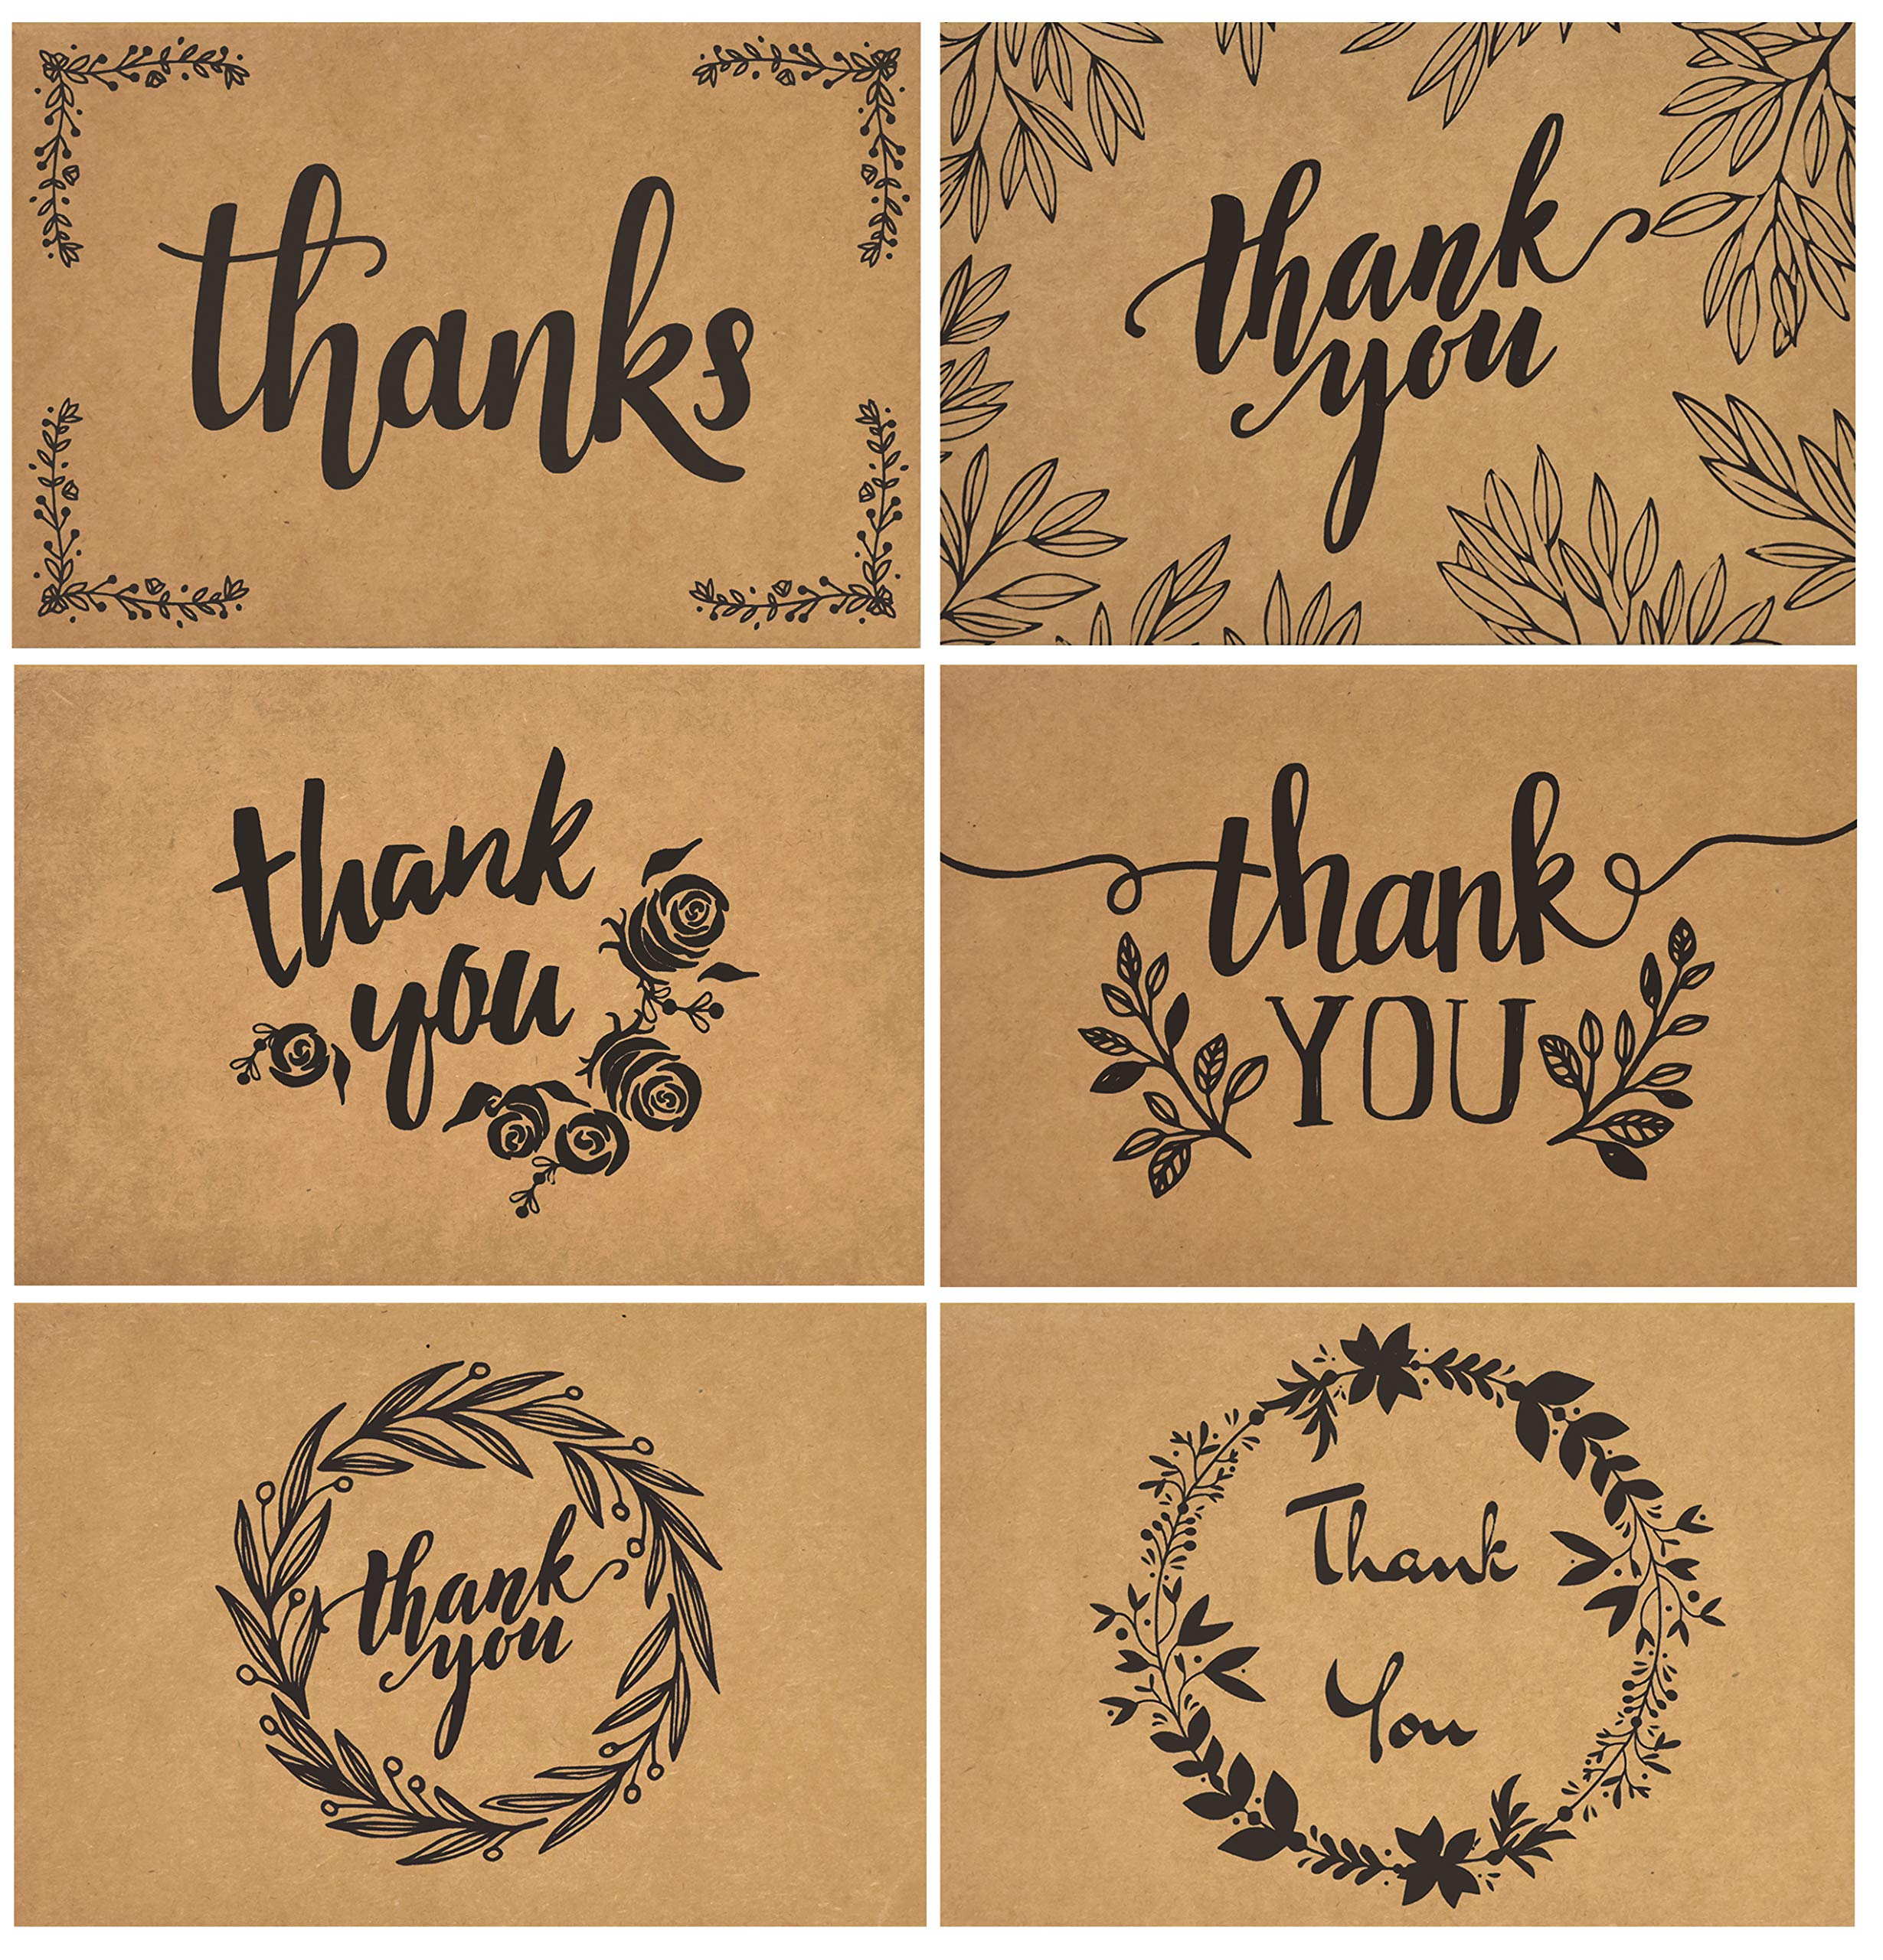 120 Elegant Kraft Paper Thank You Cards with Kraft Envelopes and Stickers - 6 Designs Bulk Notes with Black Letters for Weddings, Business, Formal, 4x6